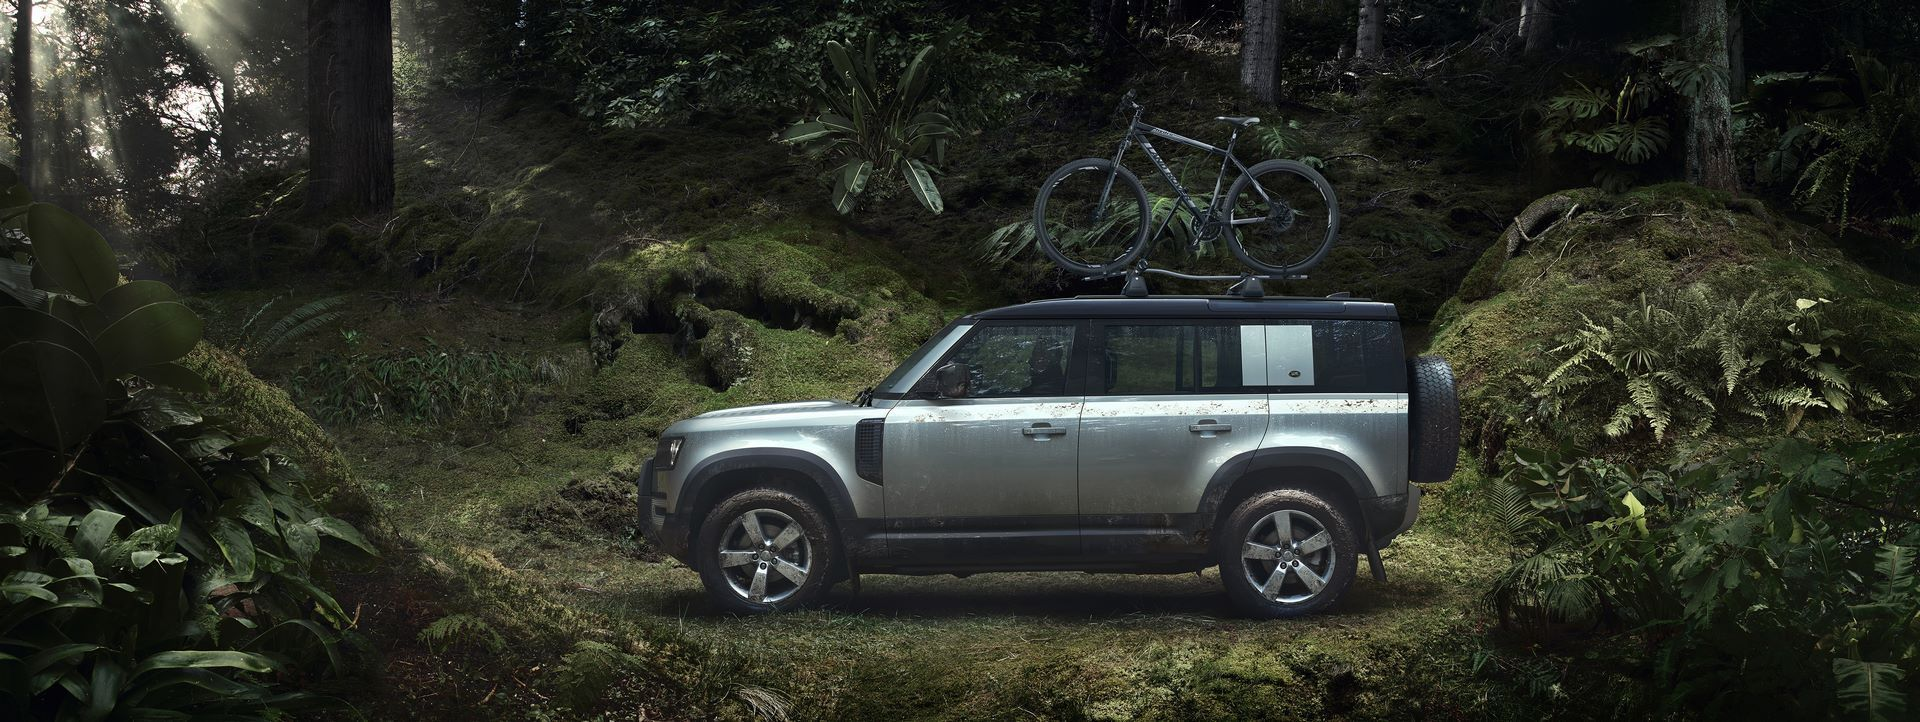 Land-Rover-Defender-2020-157